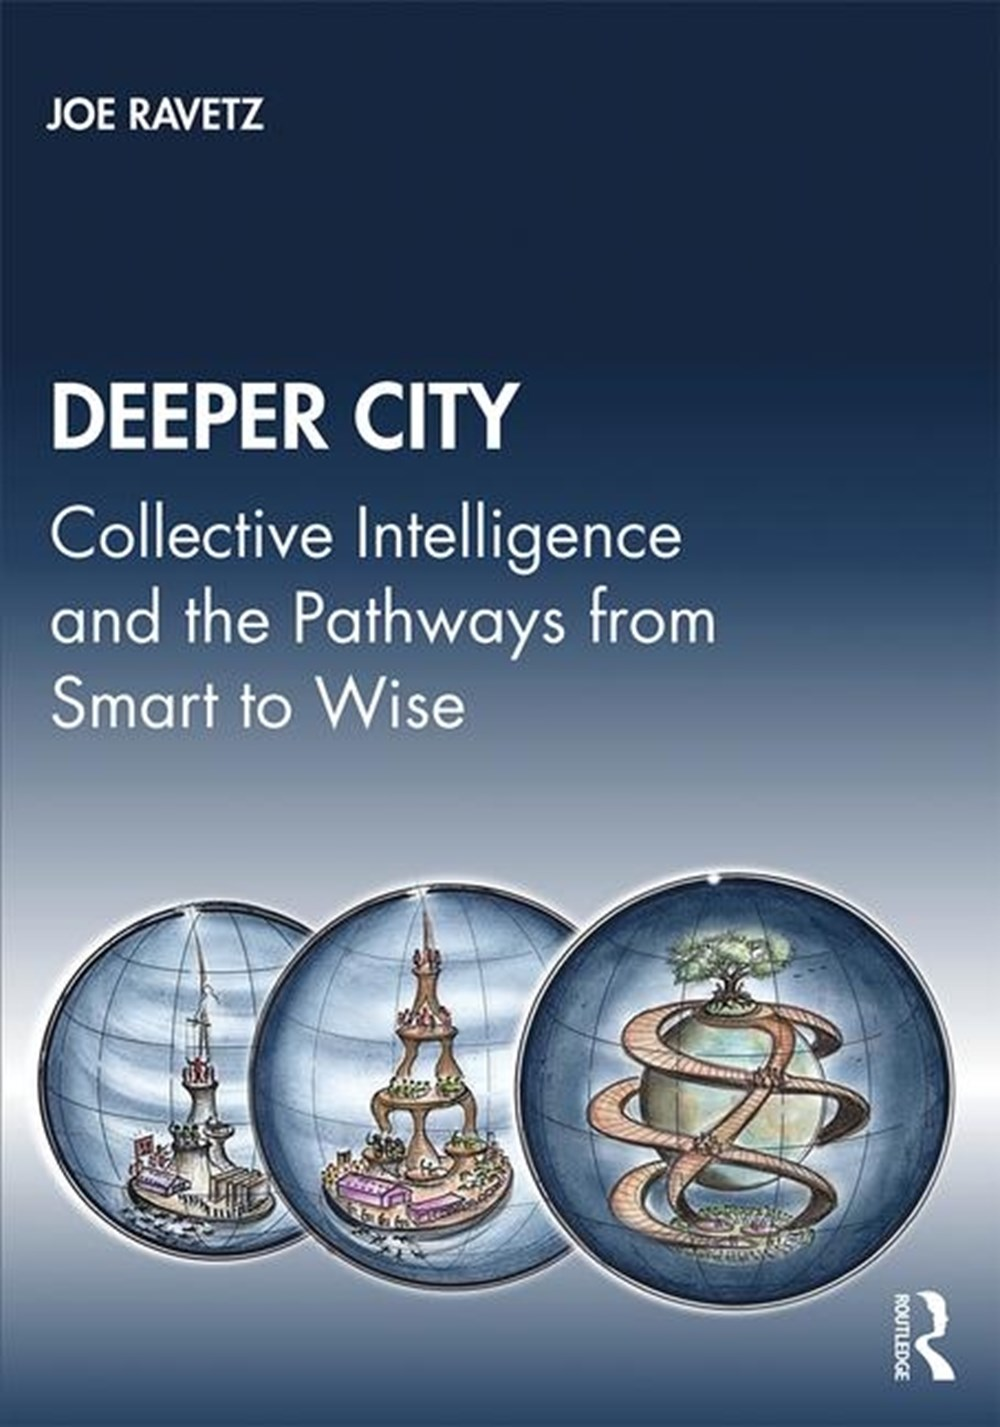 Deeper City Collective Intelligence and the Pathways from Smart to Wise